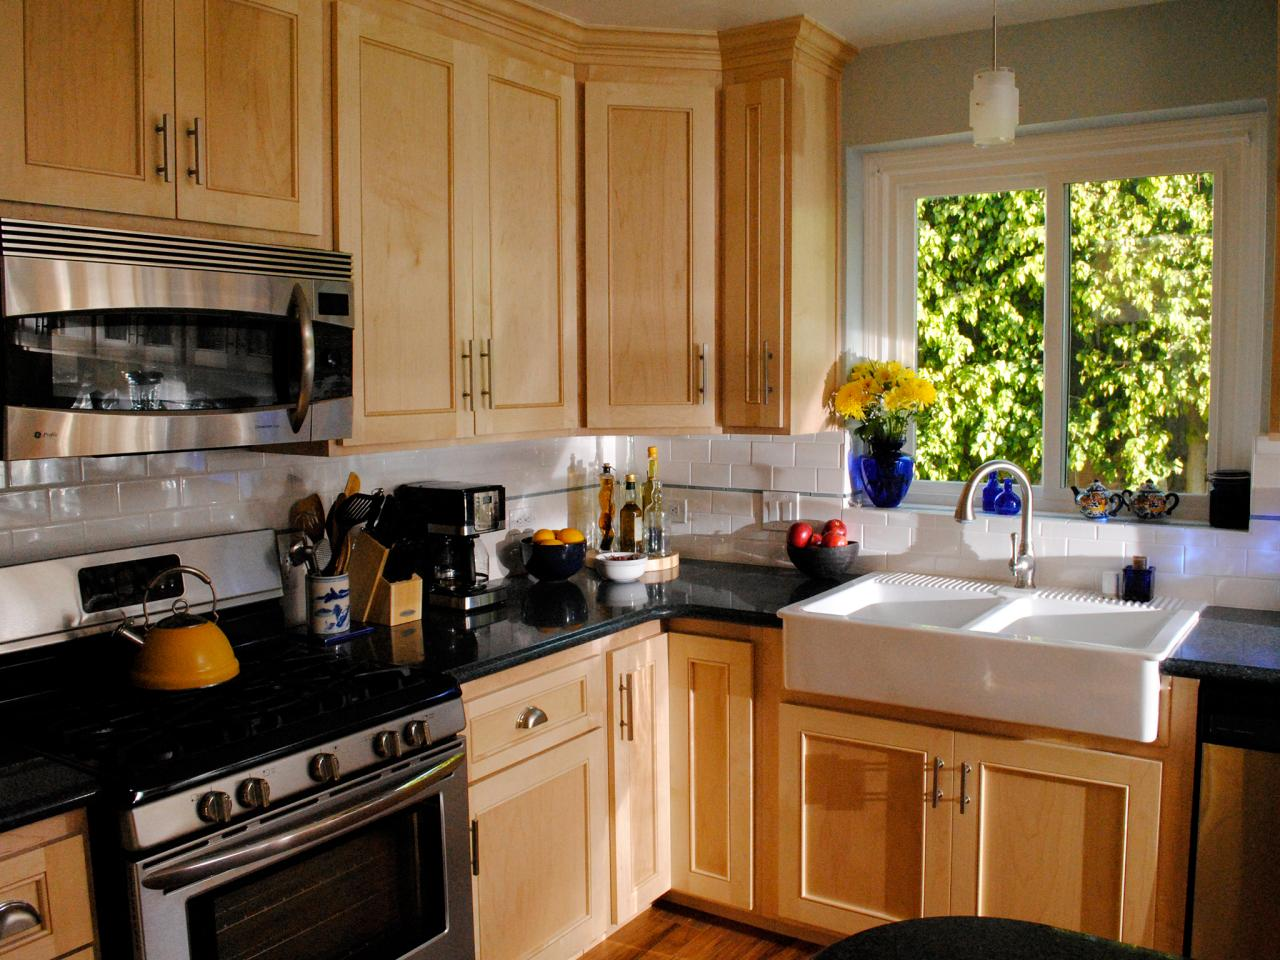 Kitchen cabinet refacing pictures options tips ideas for Ideas to redo old kitchen cabinets